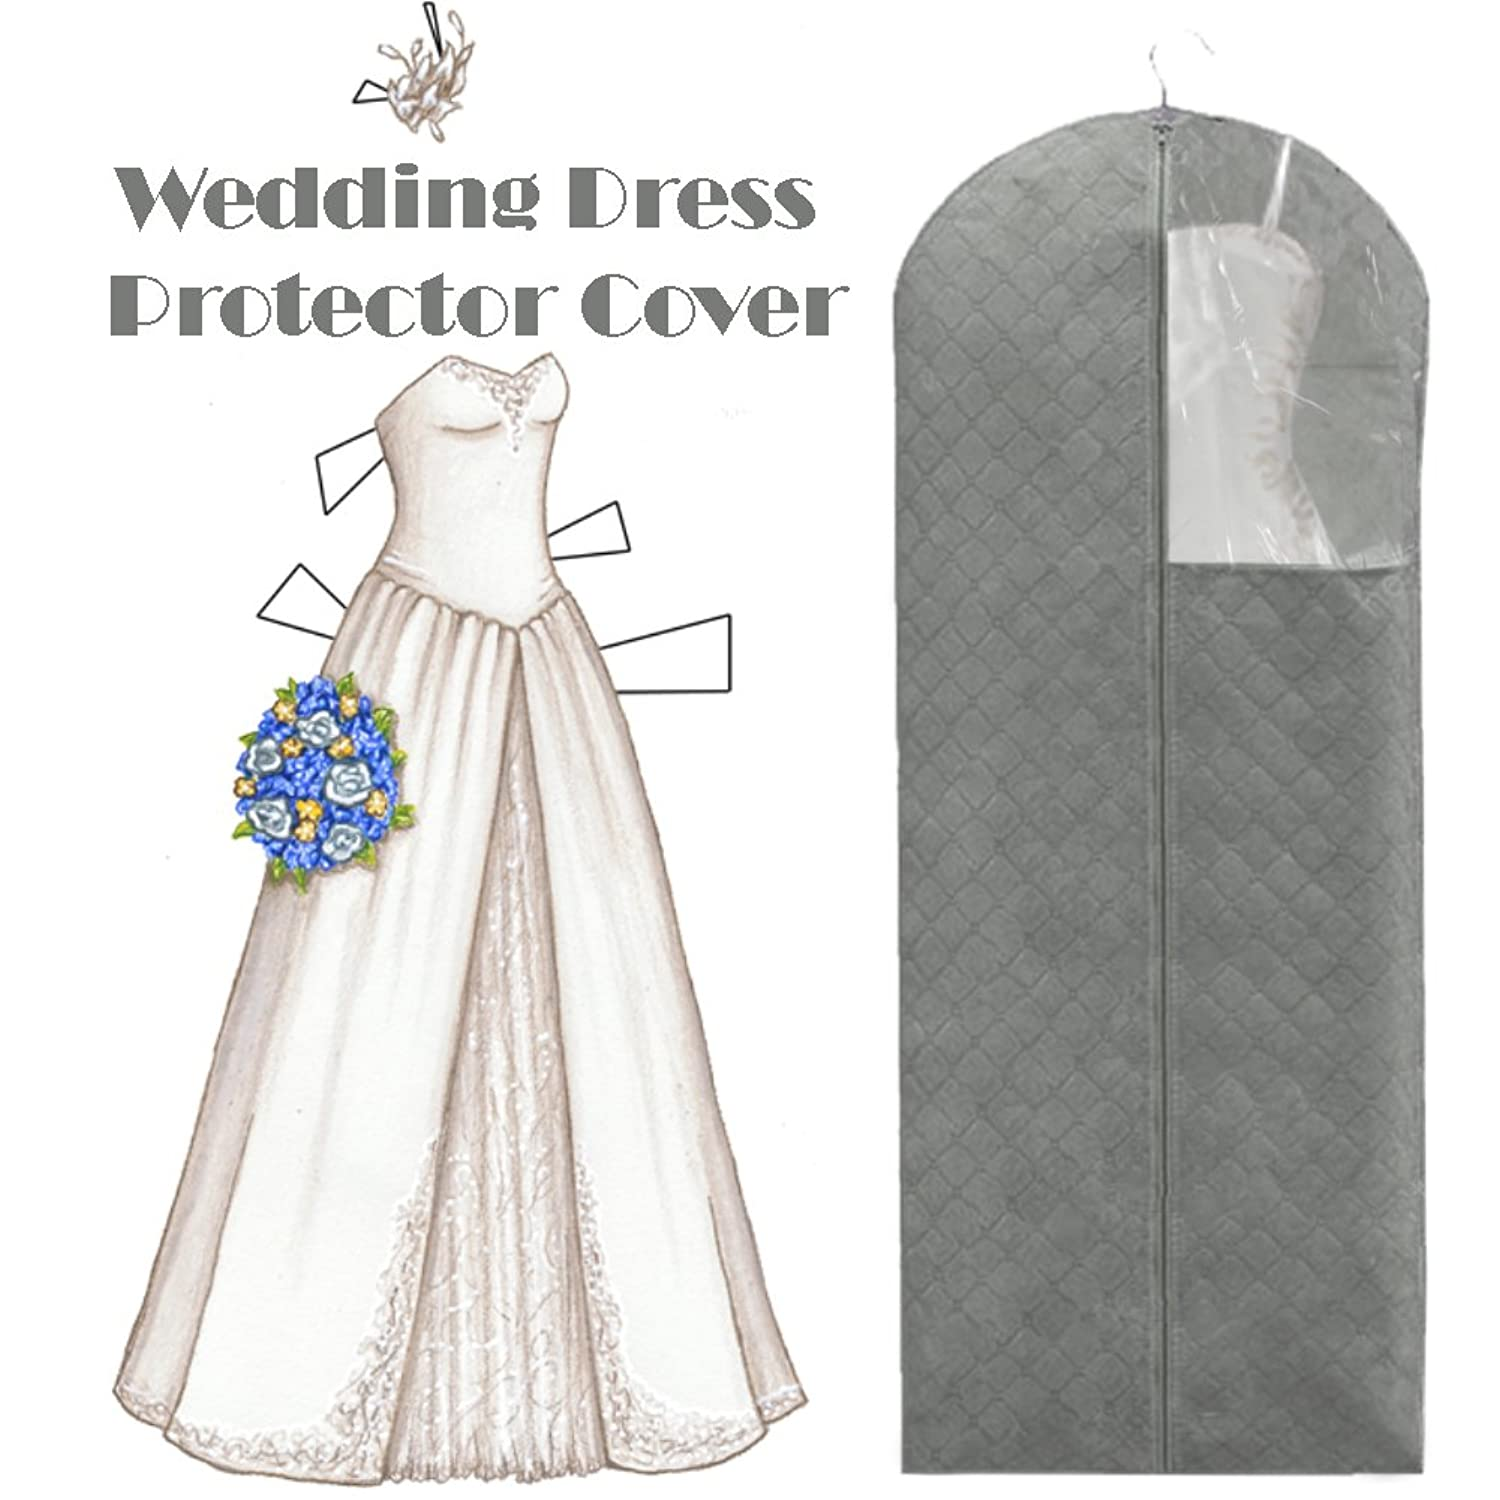 2 Pack of Bamboo Charcoal Dust Free Dress Cover, Garment Storage Bag Big Size